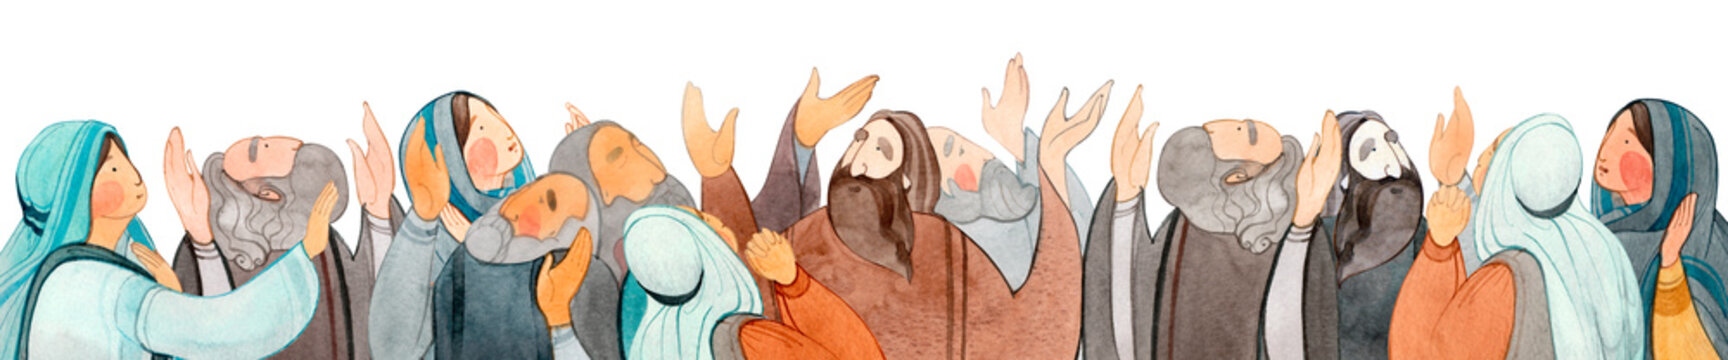 Watercolor hand drawn illustration of praying people, apostles in prayer, thanksgiving to the Lord. Decorative border for the background of Christian publications, the design of banners, cards, sites